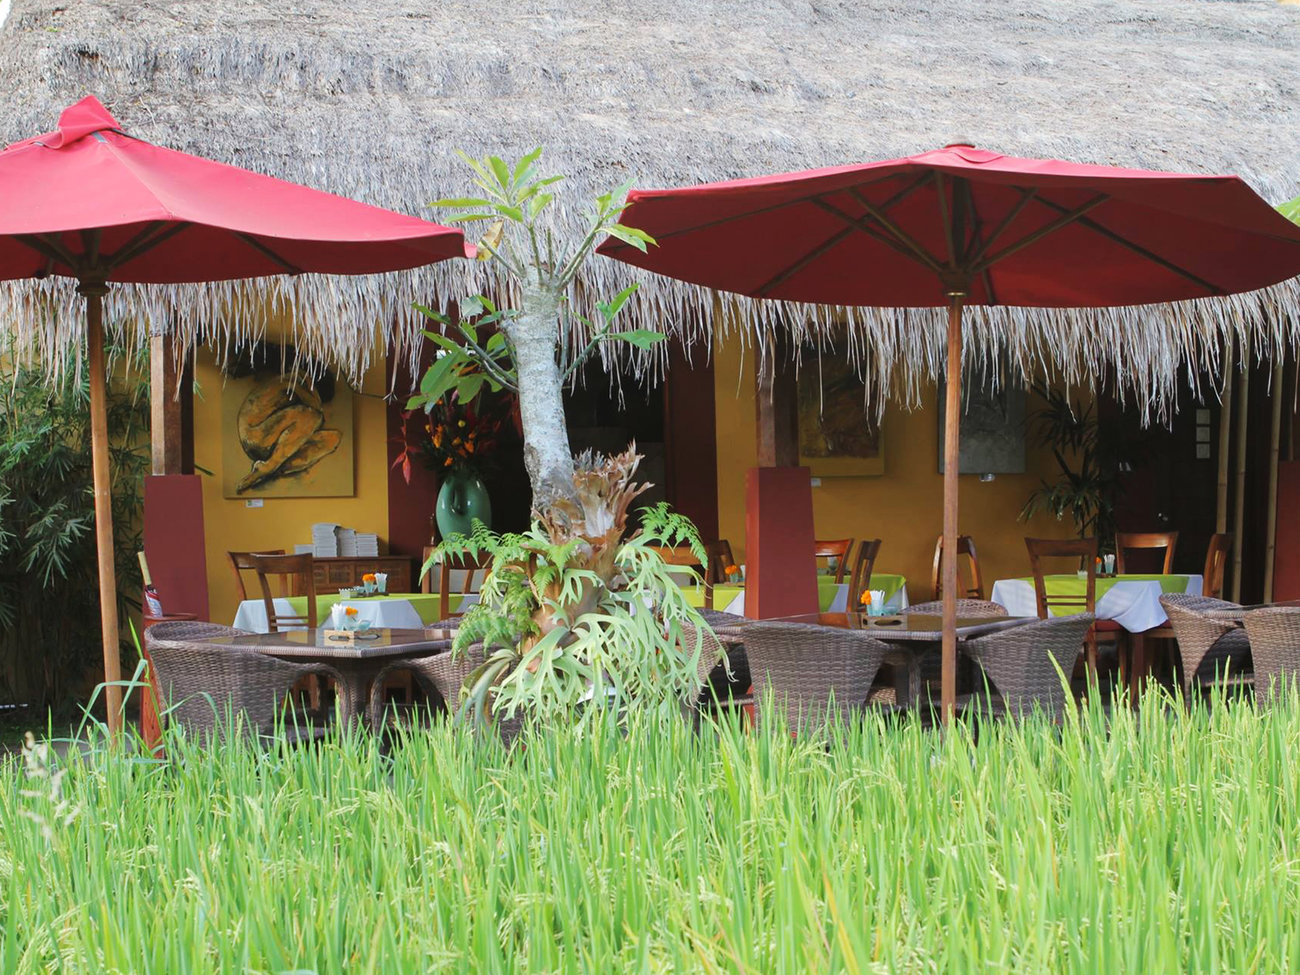 Three Monkeys Restaurant in Bali